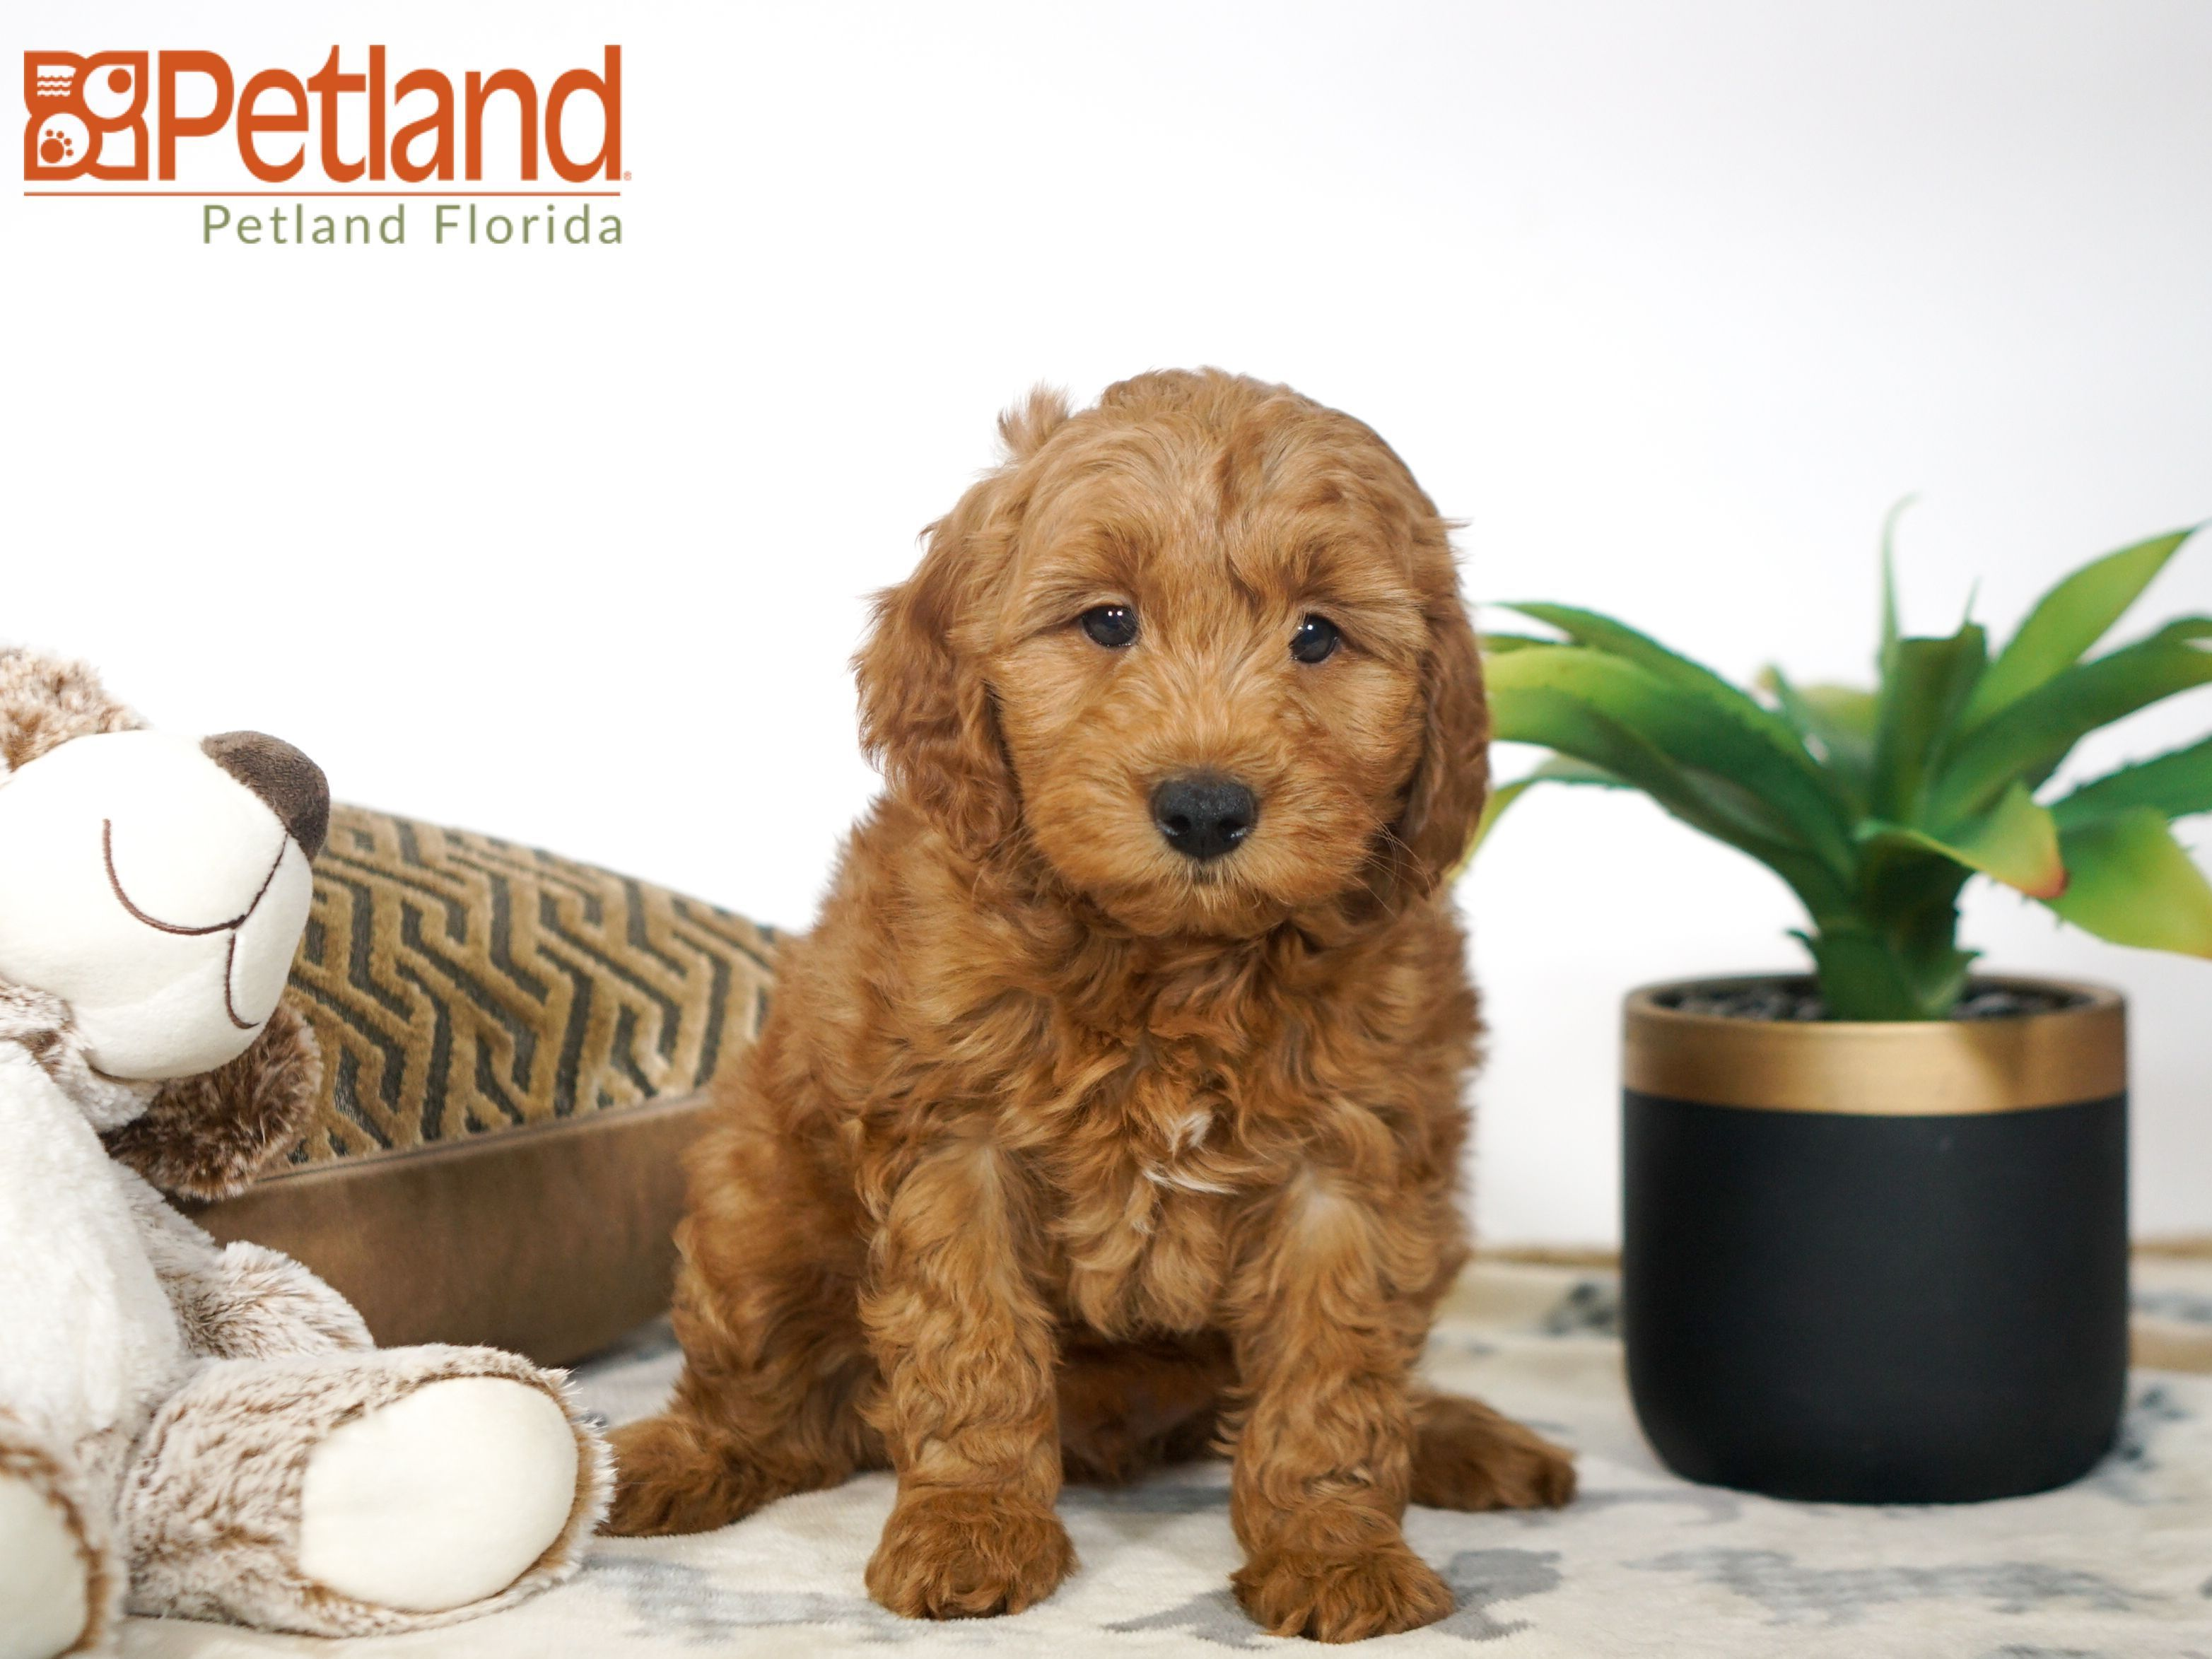 Puppies For Sale Goldendoodle Puppy For Sale Puppies Miniature